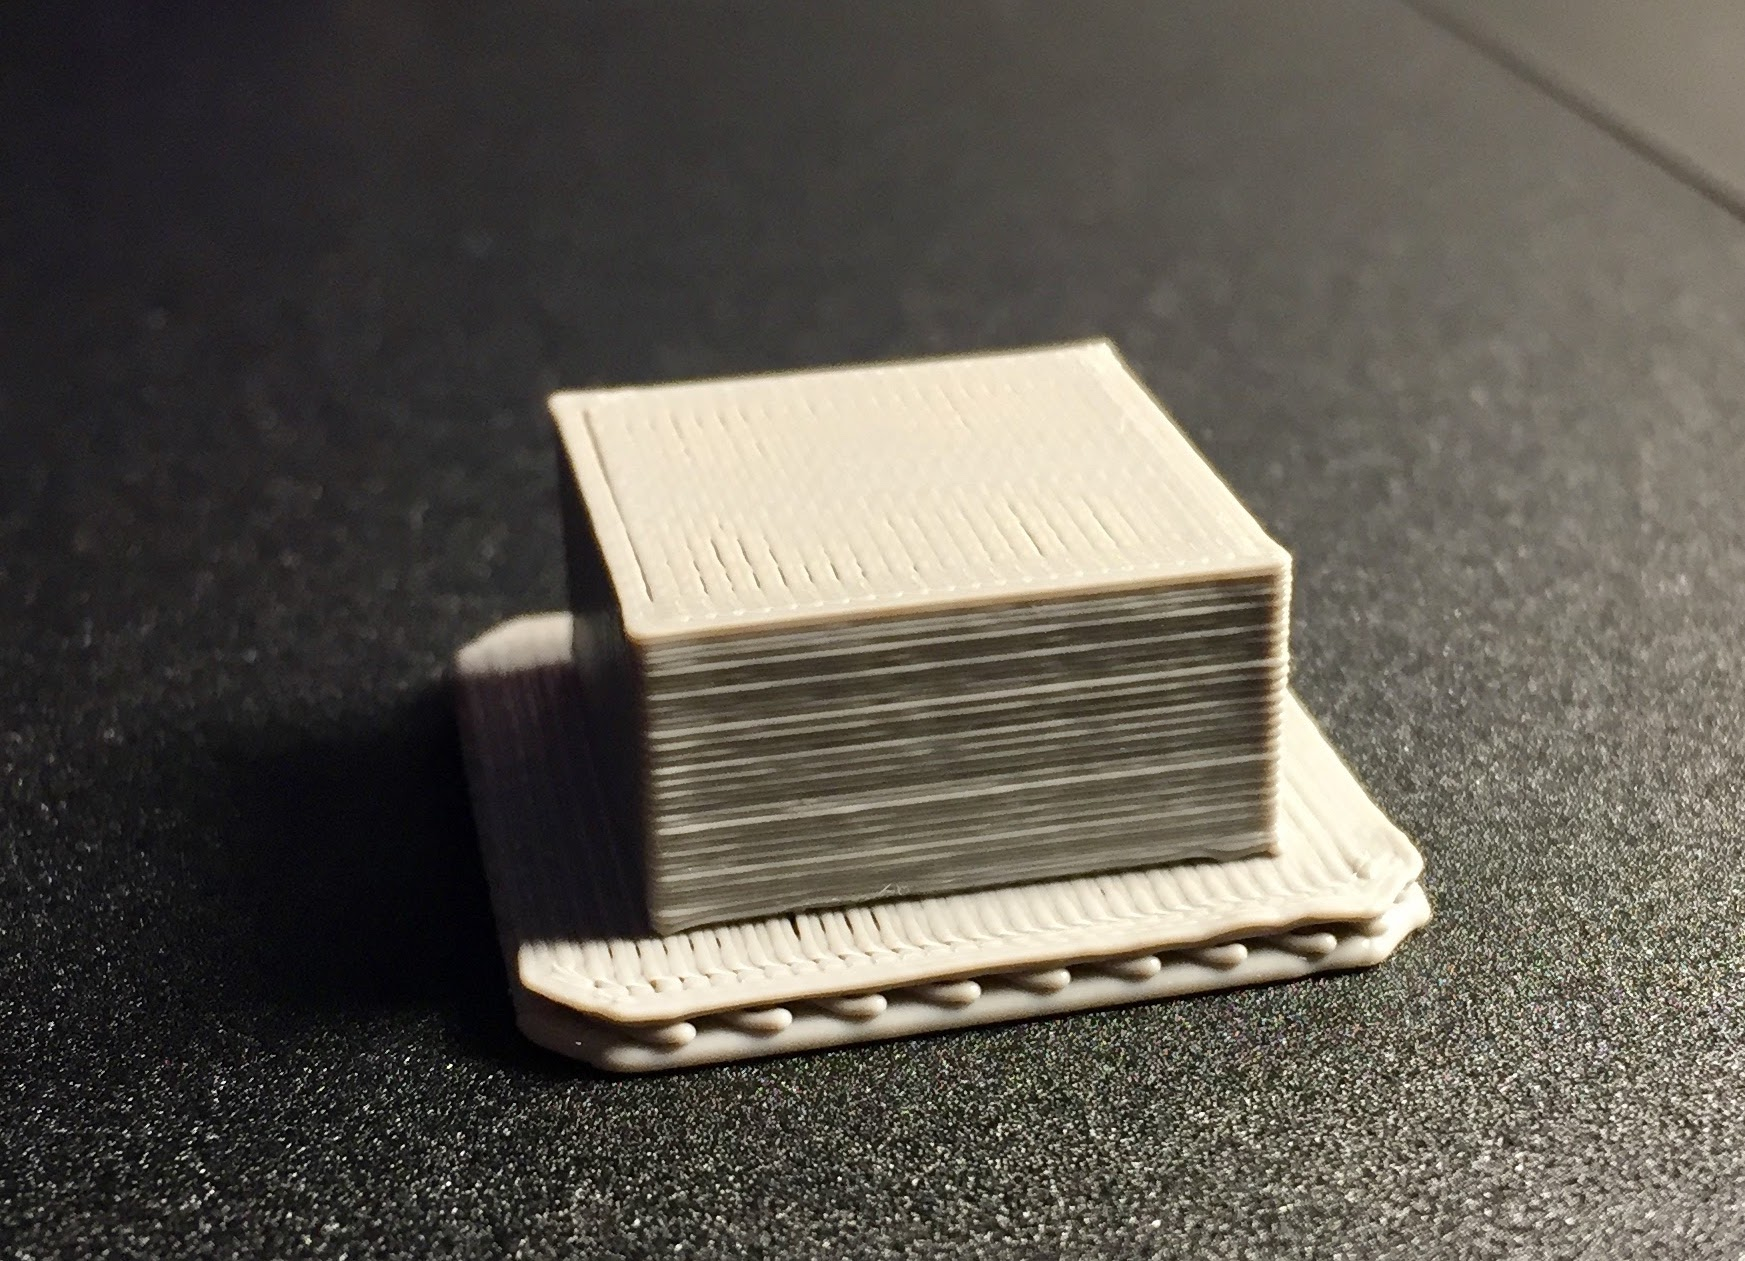 A sample 3D print with a beefy raft